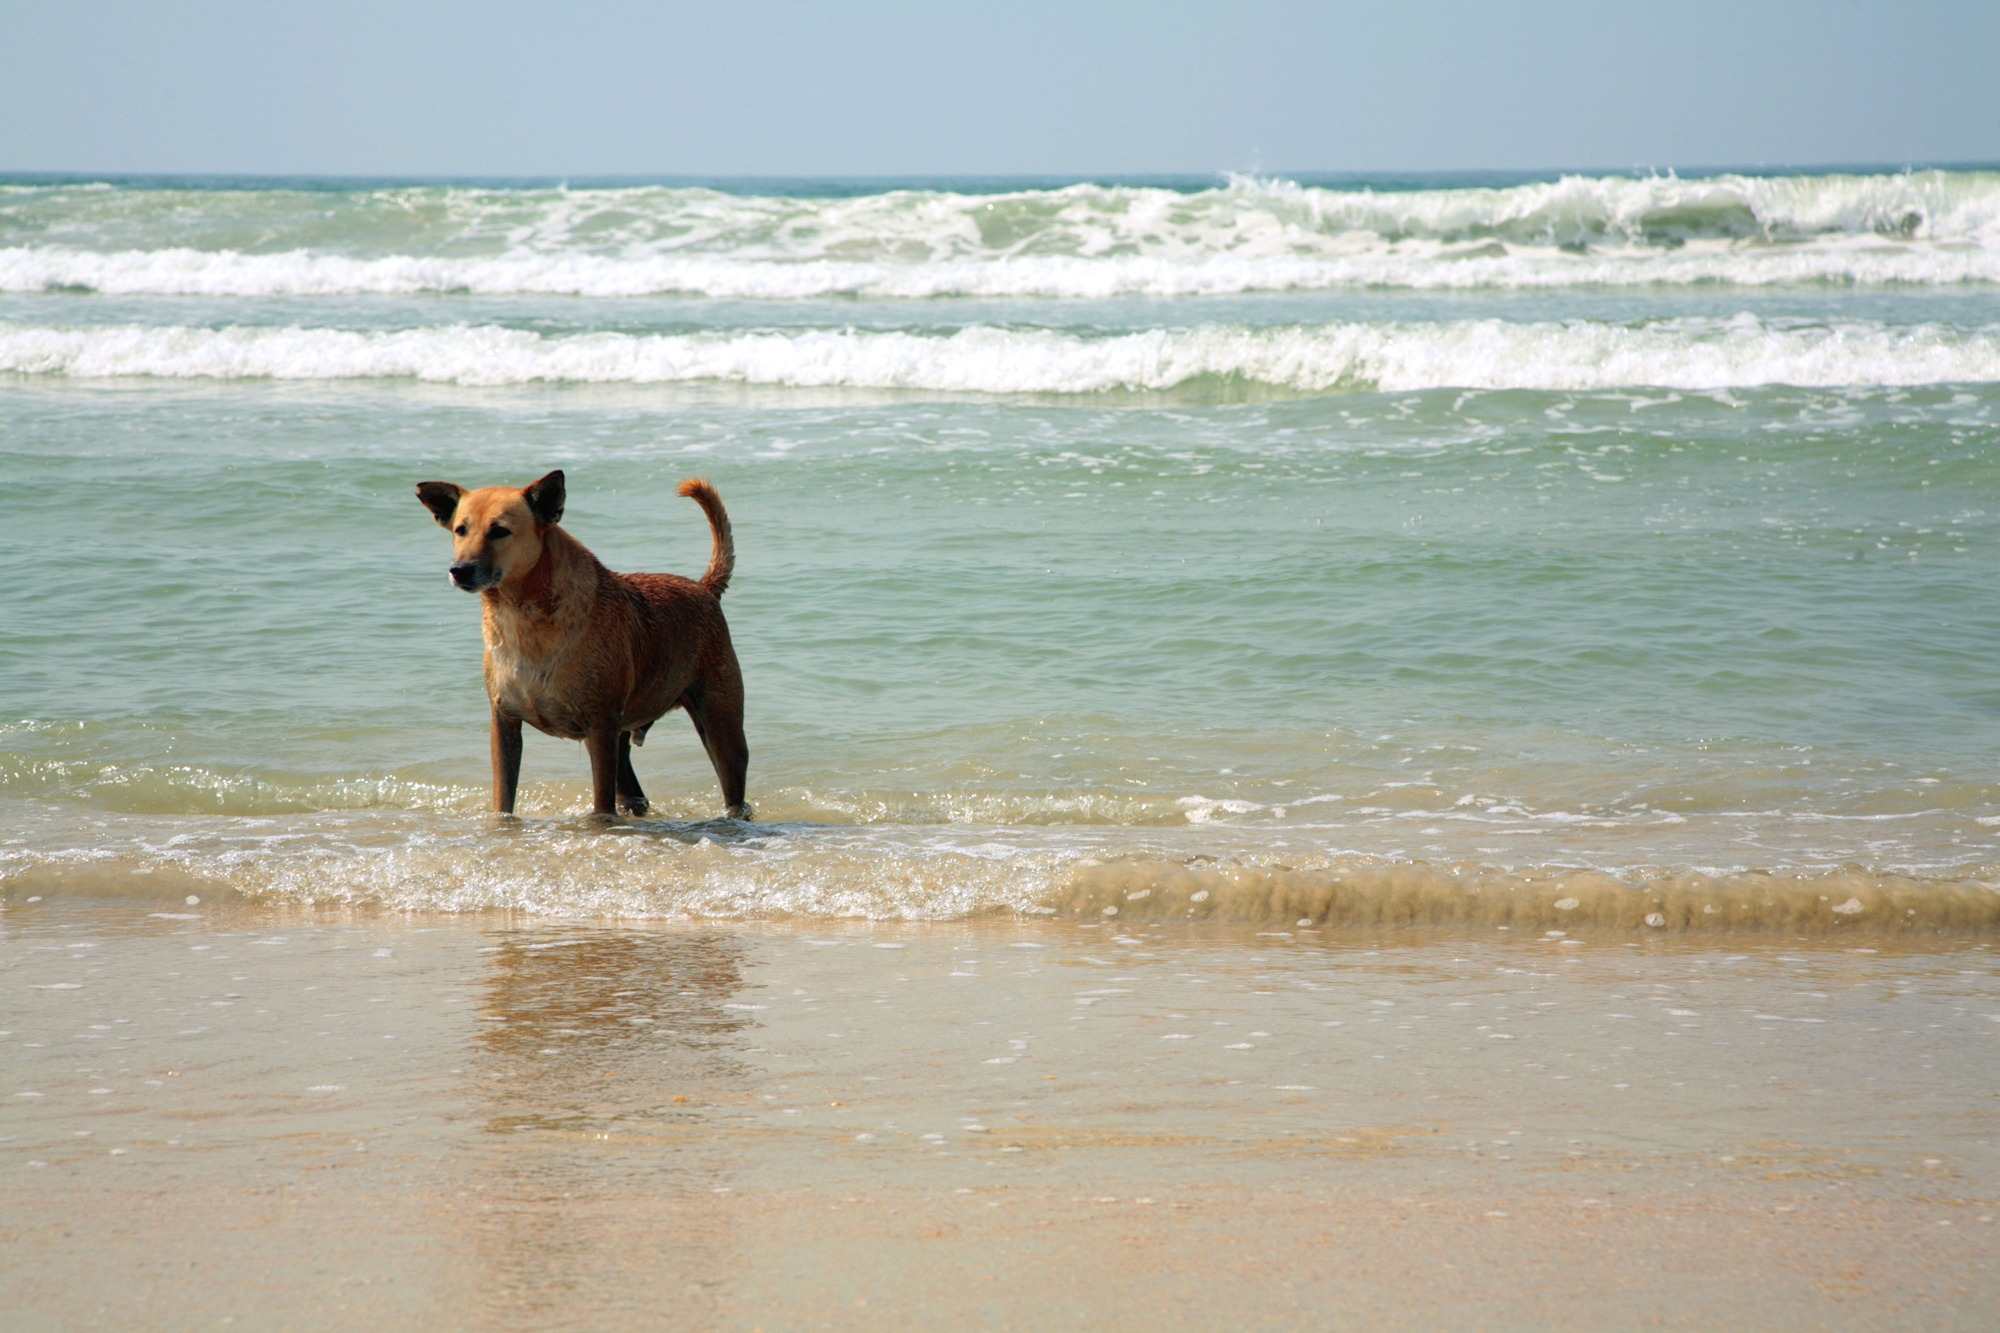 Dog playing in the surf in a dog-friendly beach in florida